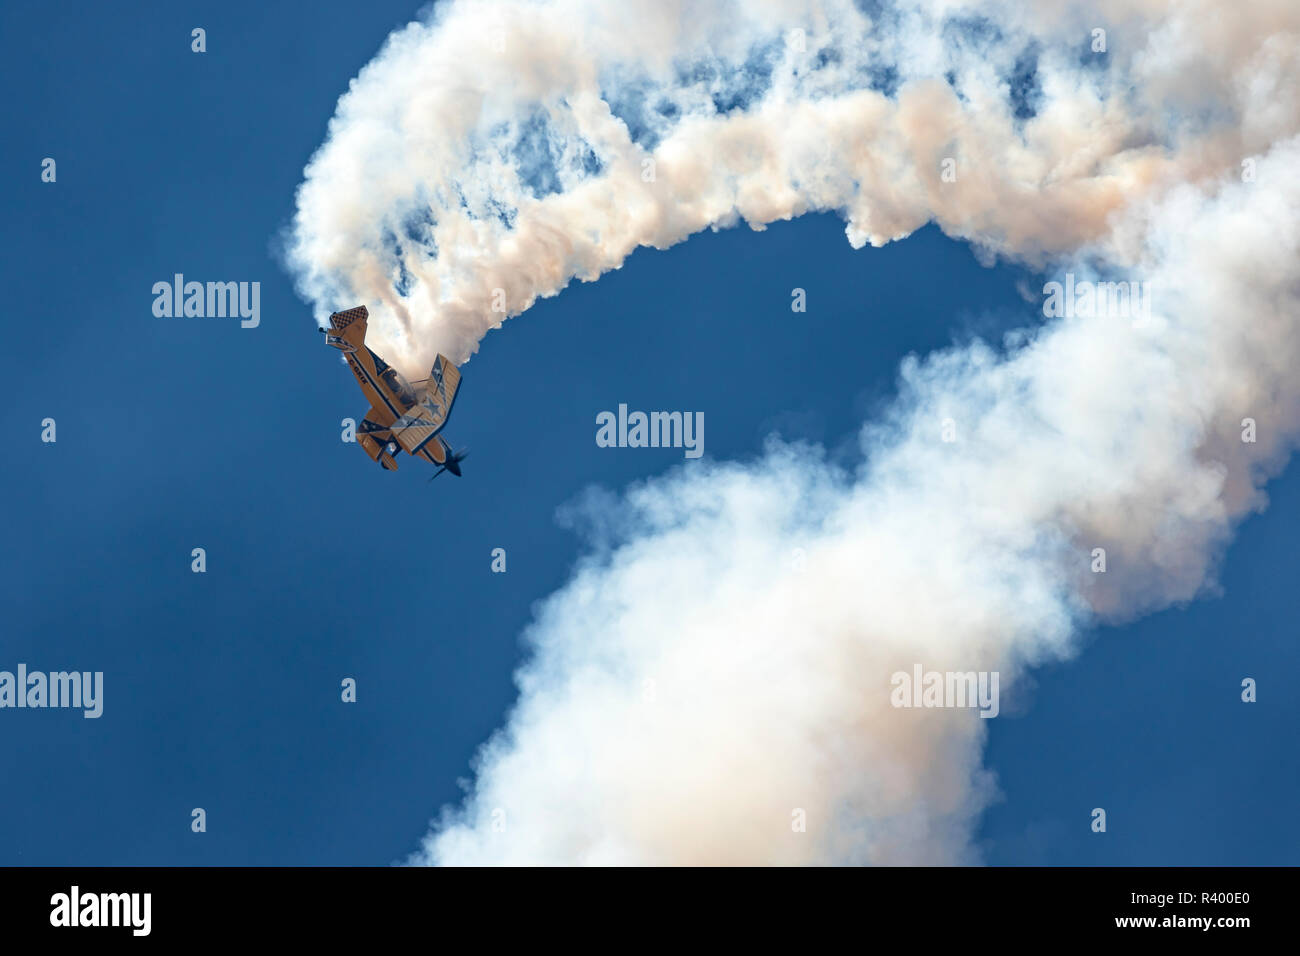 Biplane stunt pilot completes loop while trailing smoke, Madras Airshow, Oregon. - Stock Image